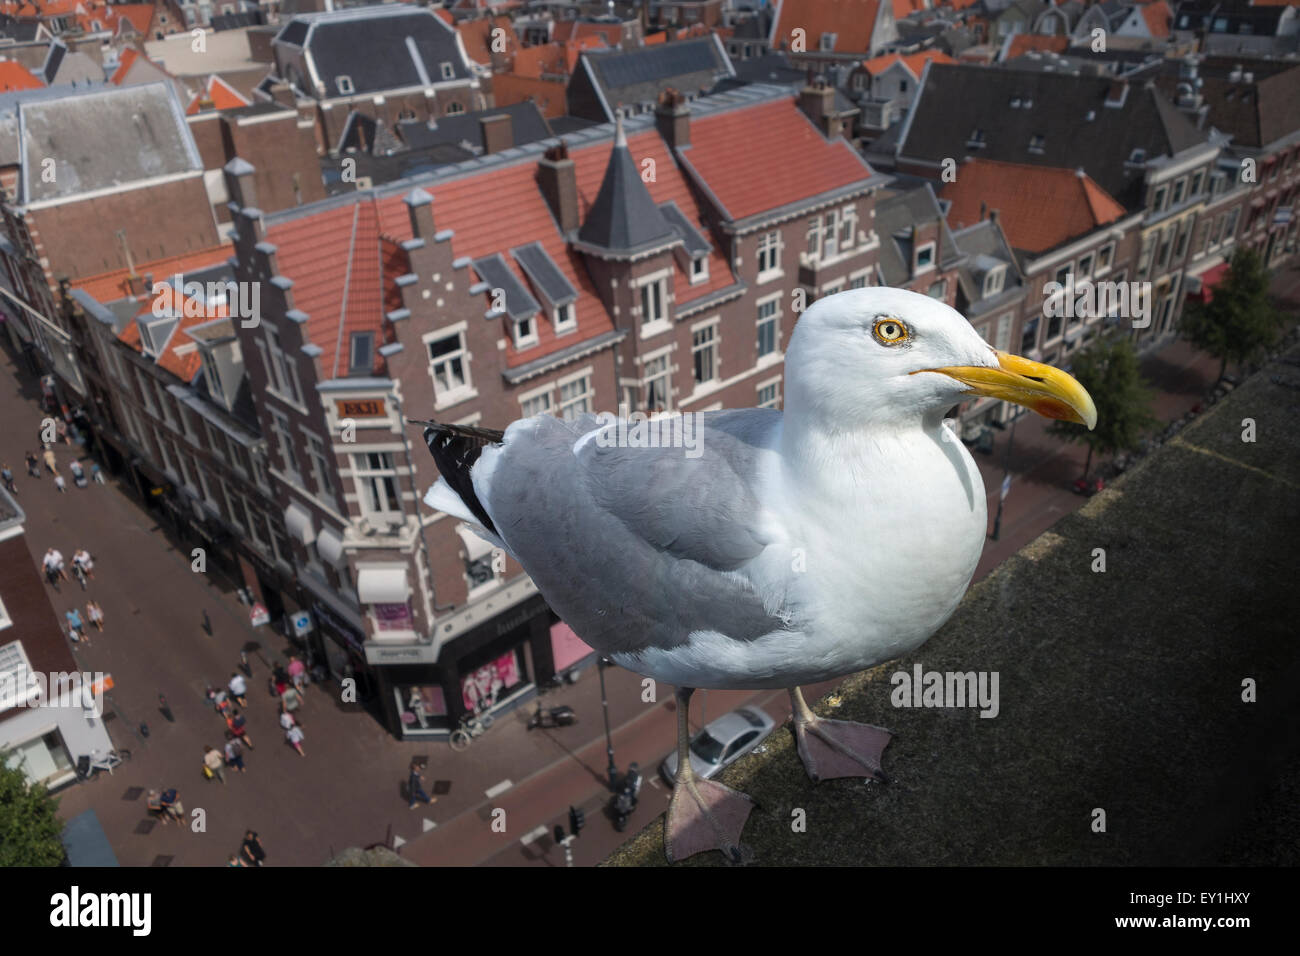 A large Dutch Seagull, Herring Gull (Larus argentatus argenteus) on a roof high above the city of Haarlem, The Netherlands. - Stock Image